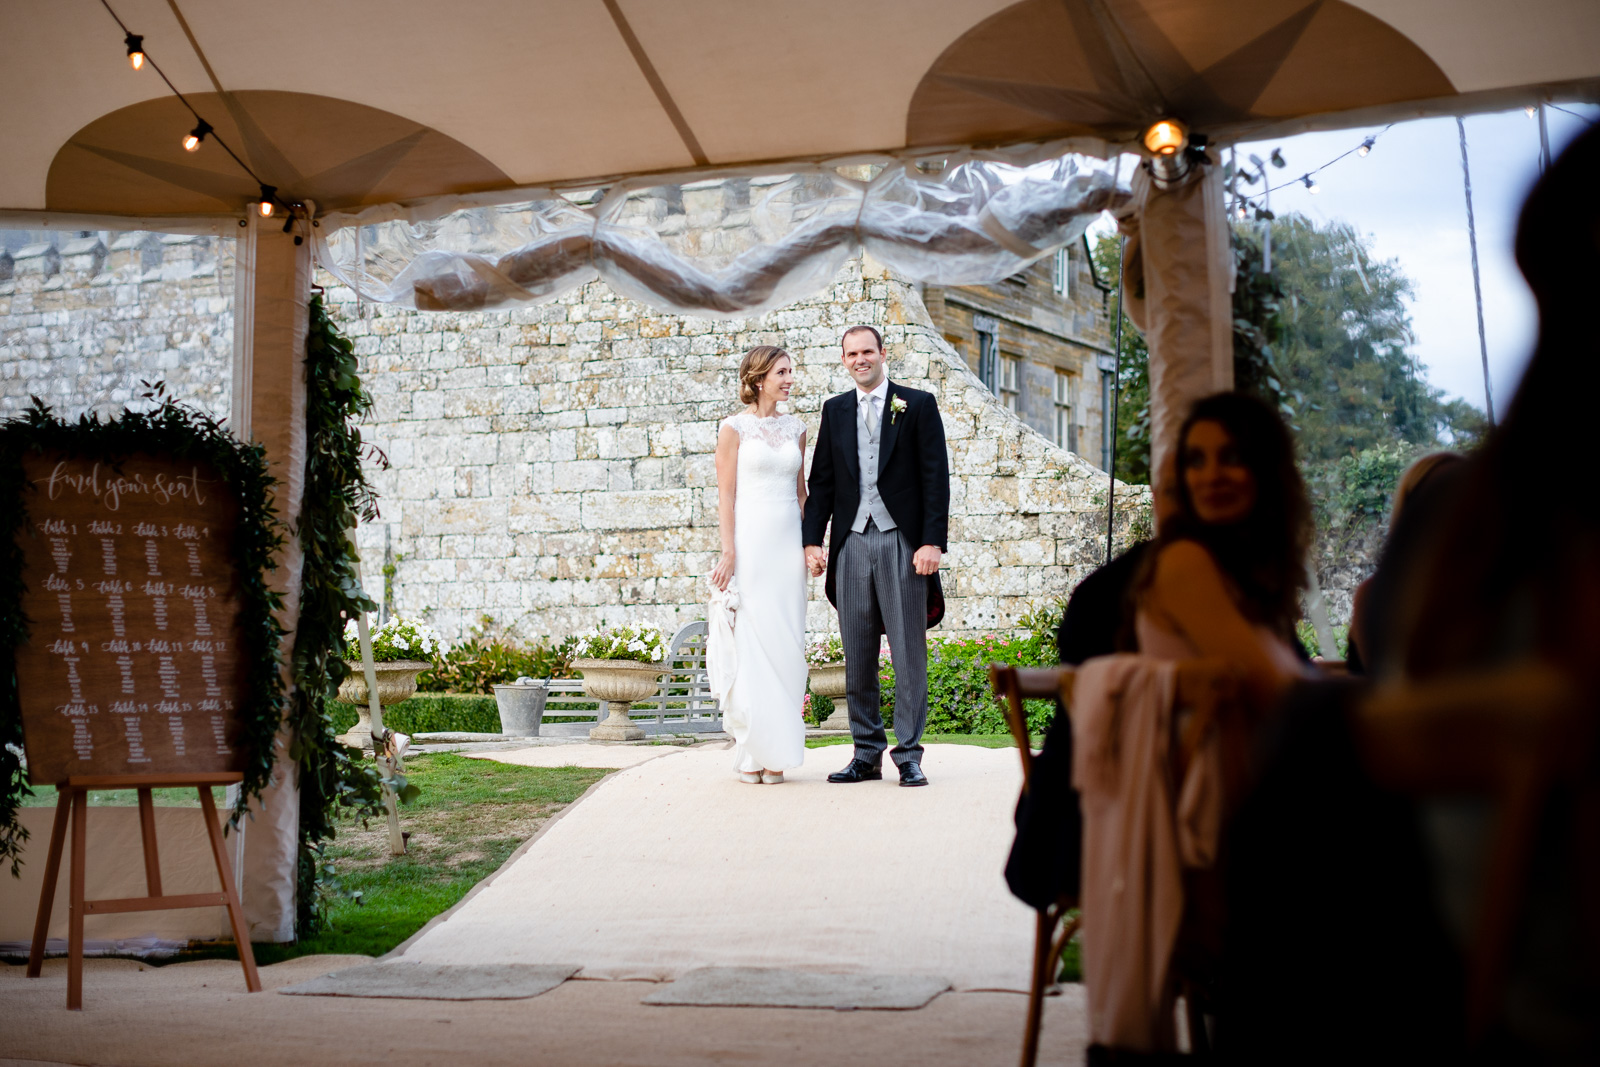 Emily & Ed's PapaKåta Sperry Tent wedding at Buckhurst Park captured by Tony Hart Photography: Making an entrance